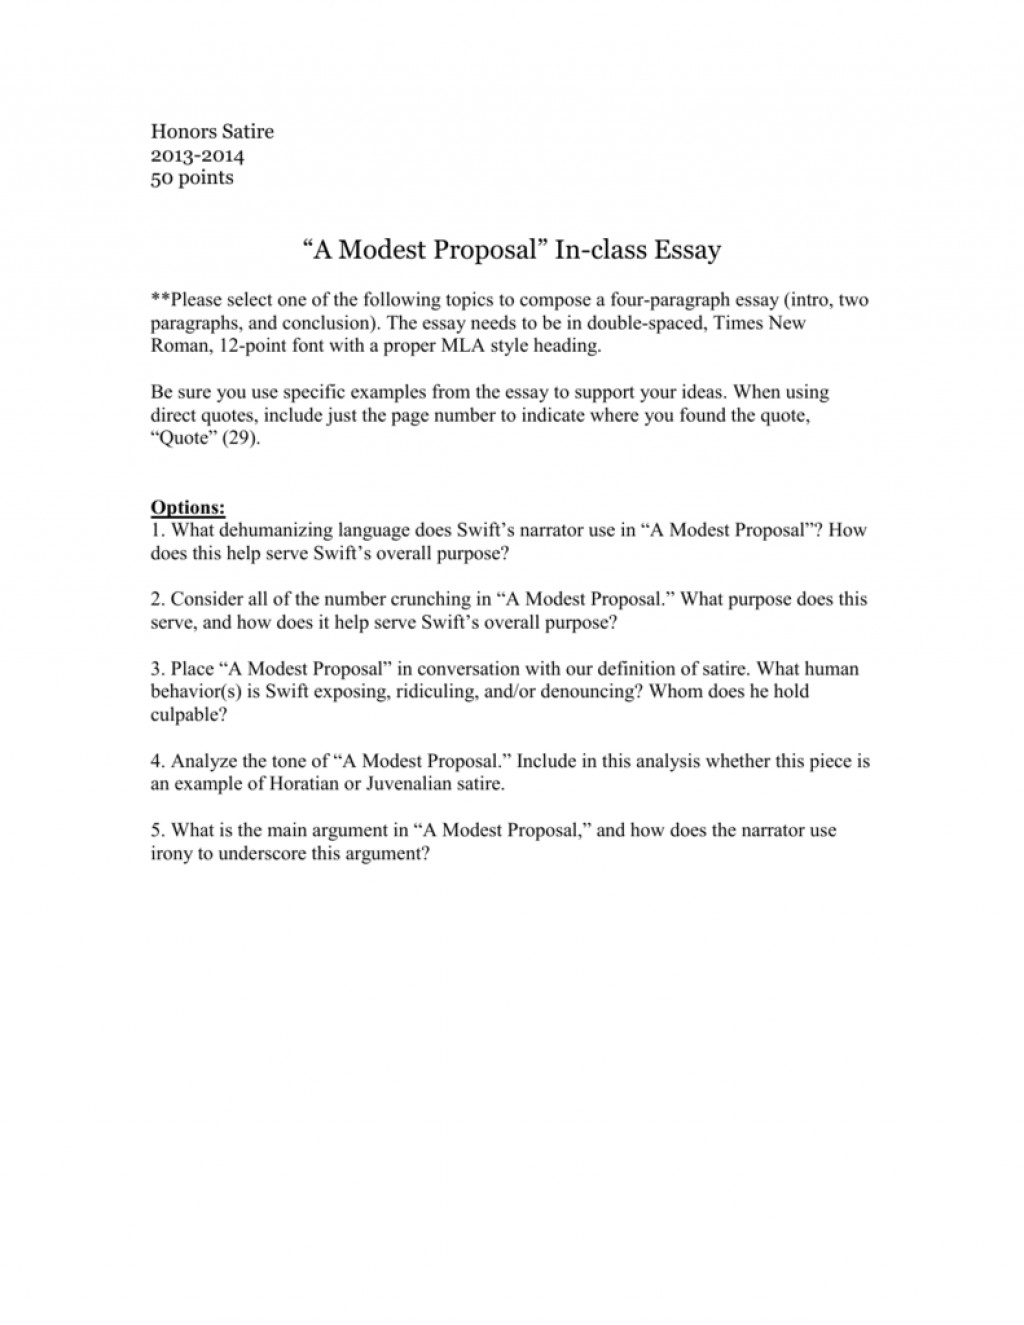 003 Essay Example 006676987 1 Modest Astounding A Proposal 50 Essays Questions Large